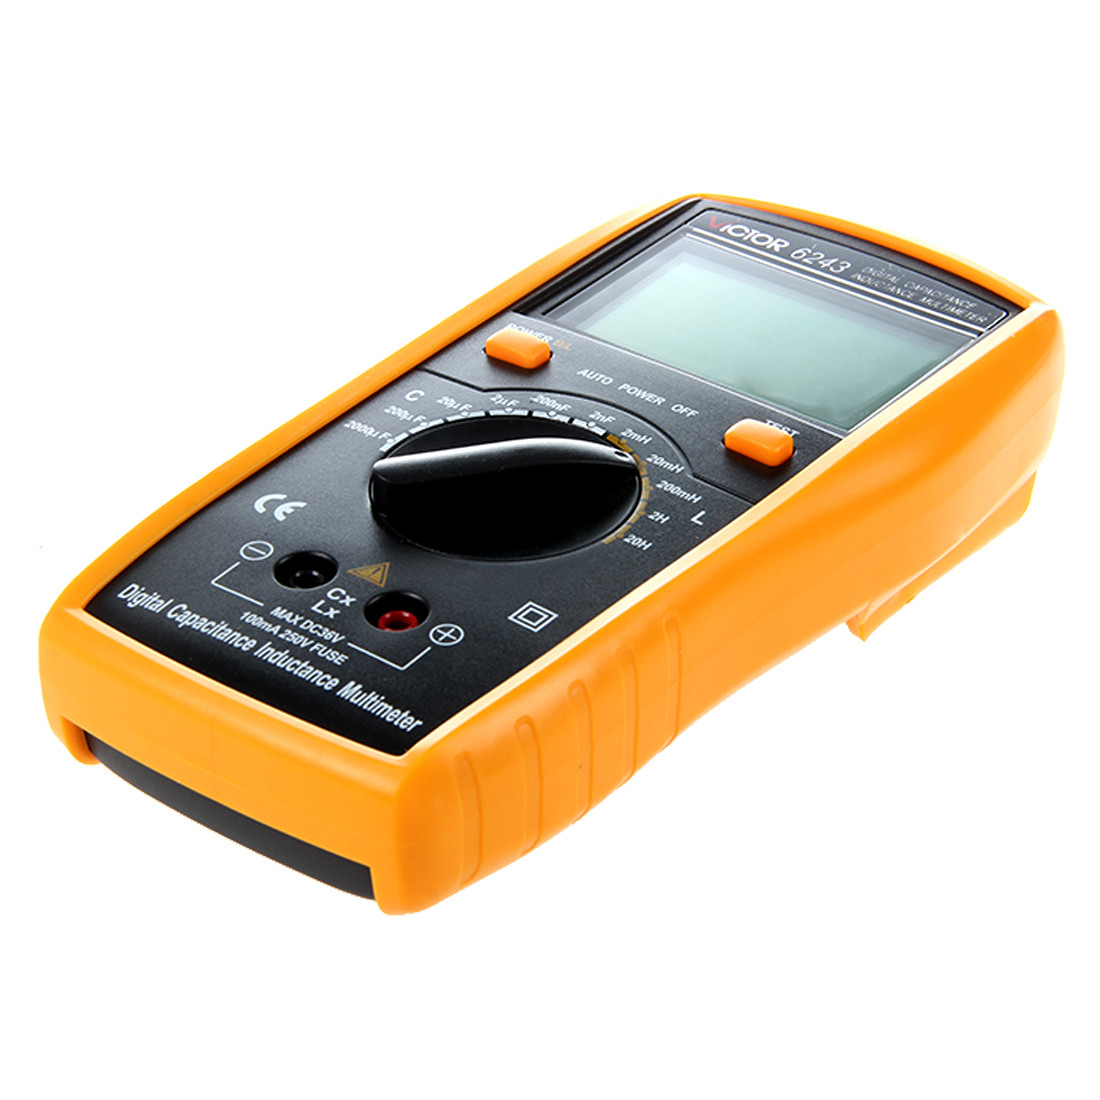 VICTOR VC6243 Digital LCR Multimeter with LCD Display yellow & Black excel dt9205a 3 lcd digital multimeter black orange 1 x 6f22